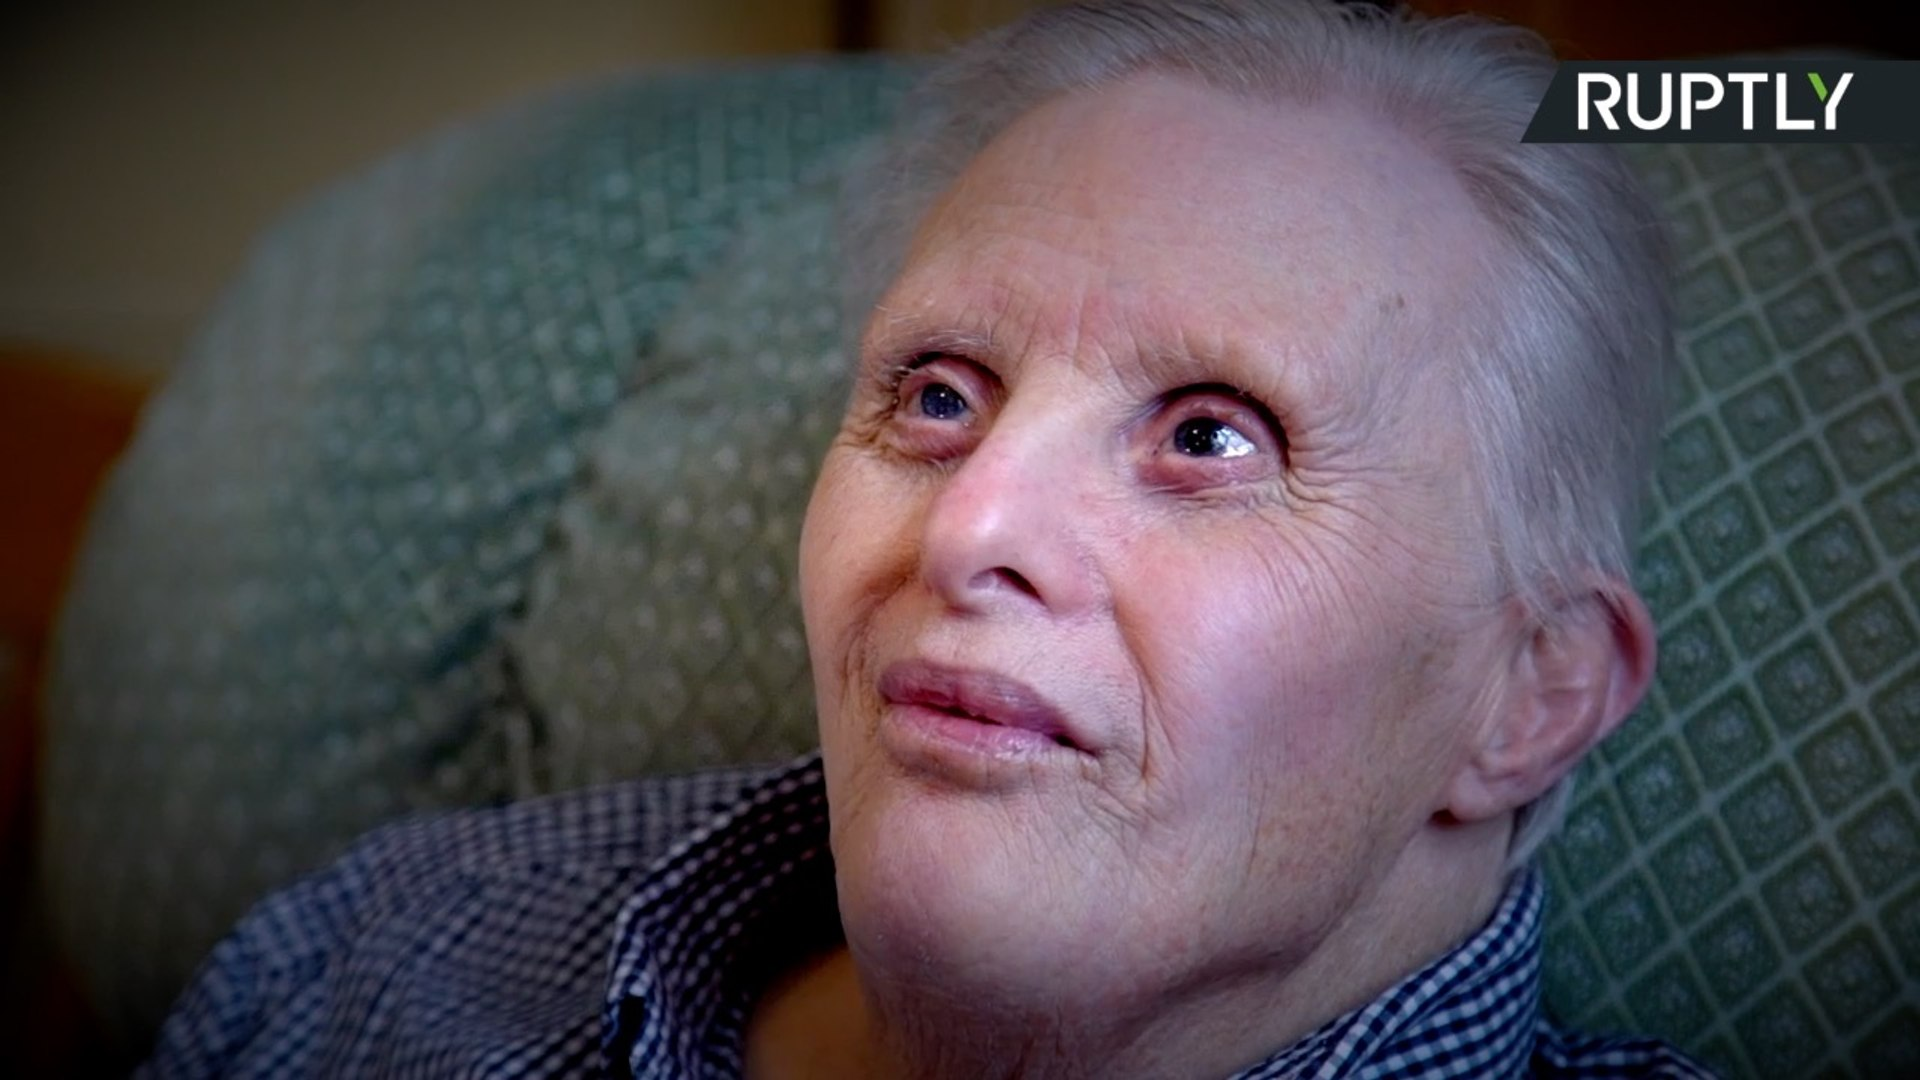 Oldest Person with Down Syndrome Celebrates 77th Birthday